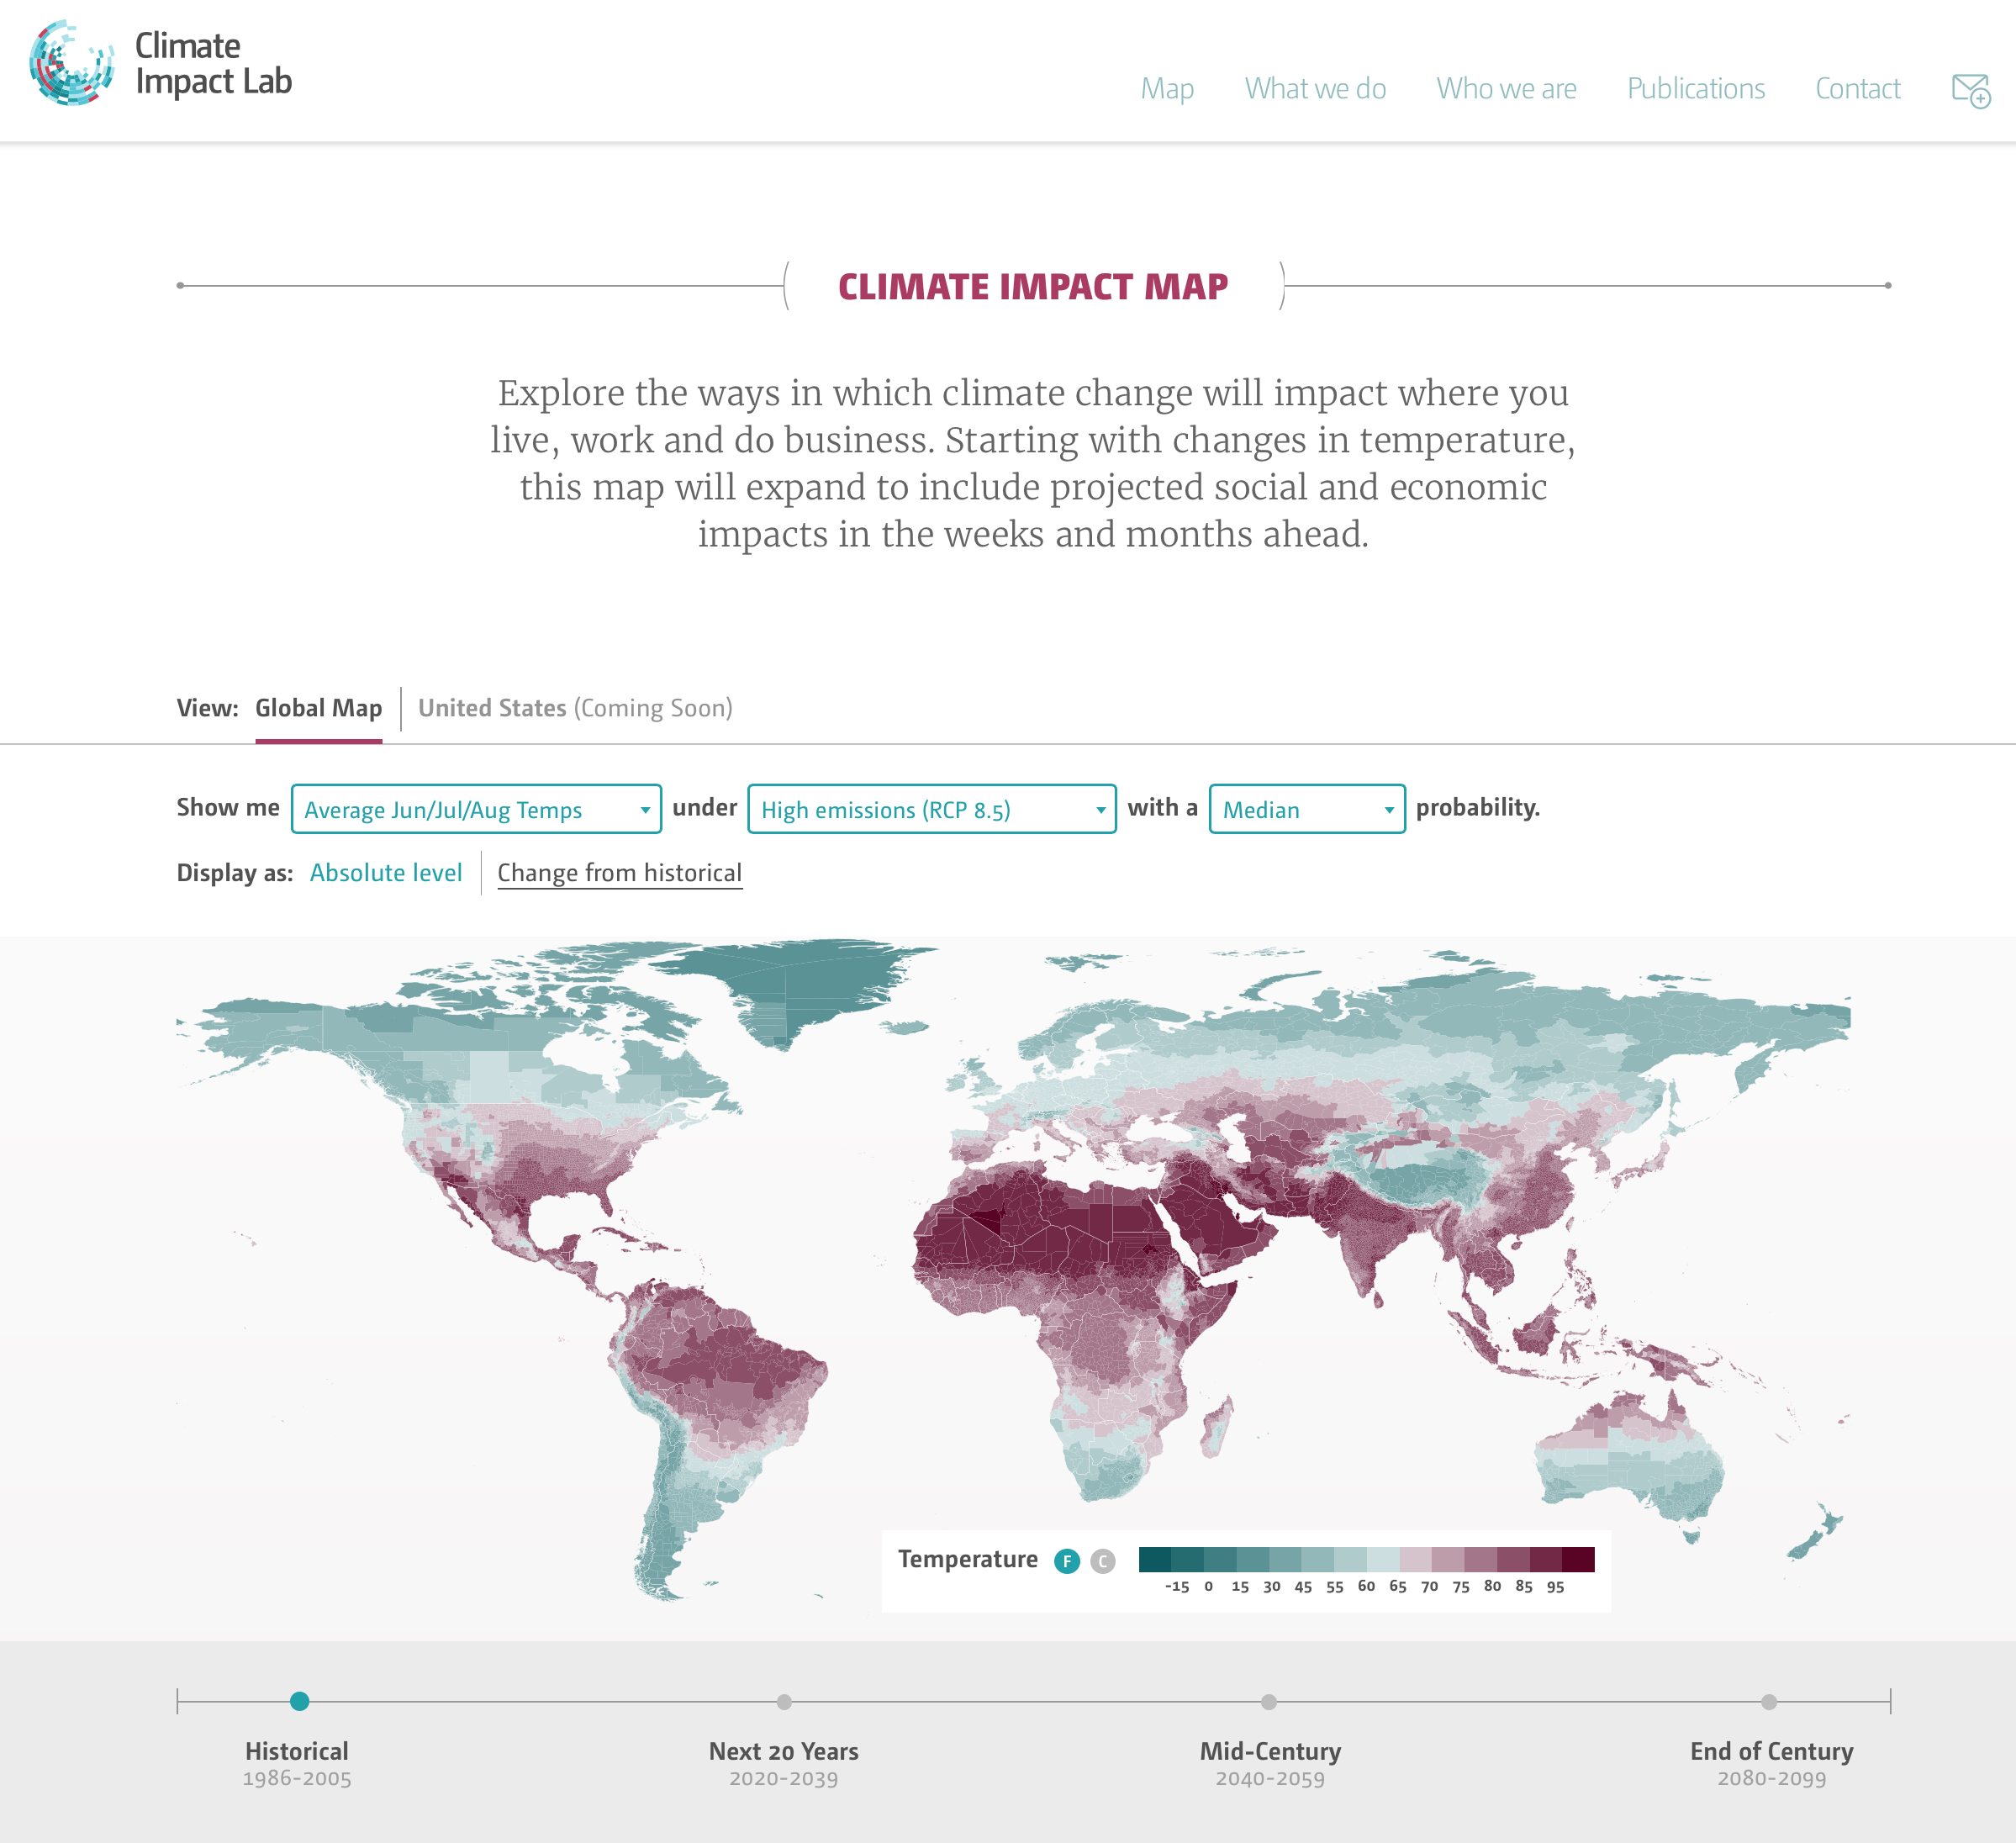 climate impact lab map